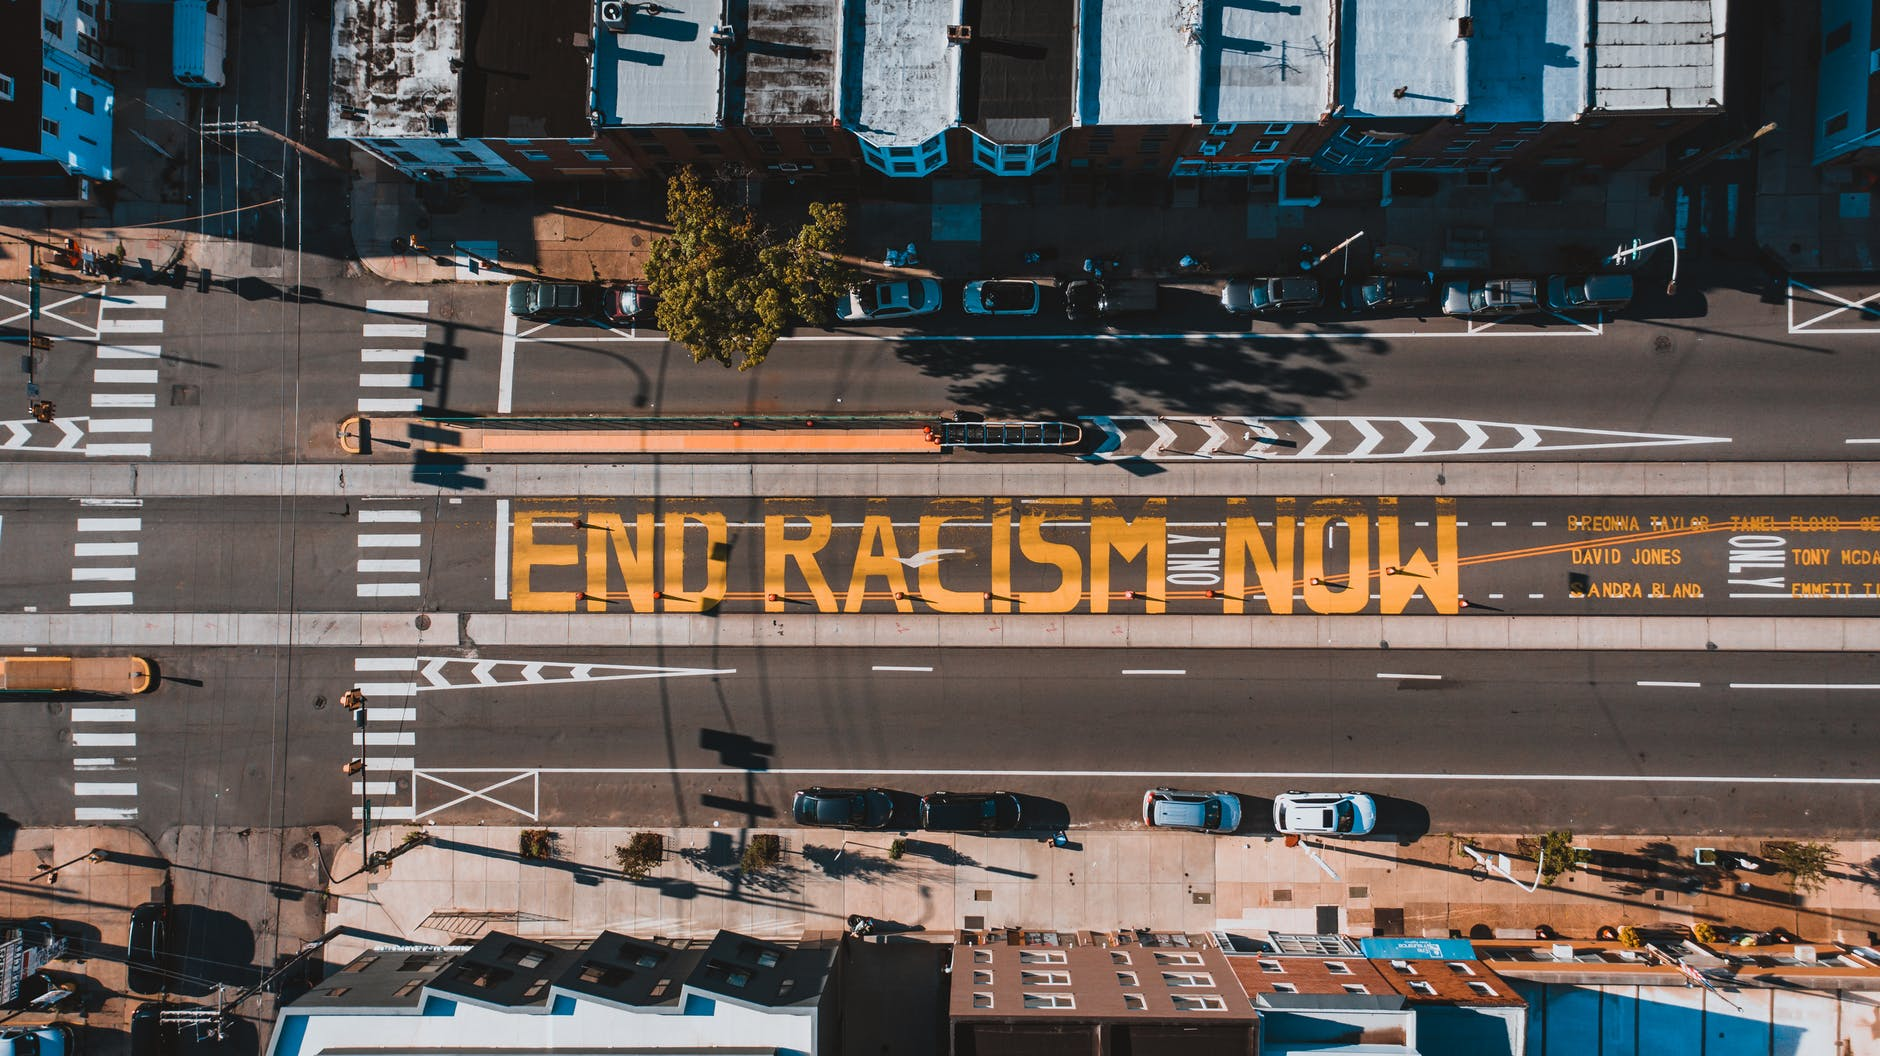 roadway with end racism now title in town